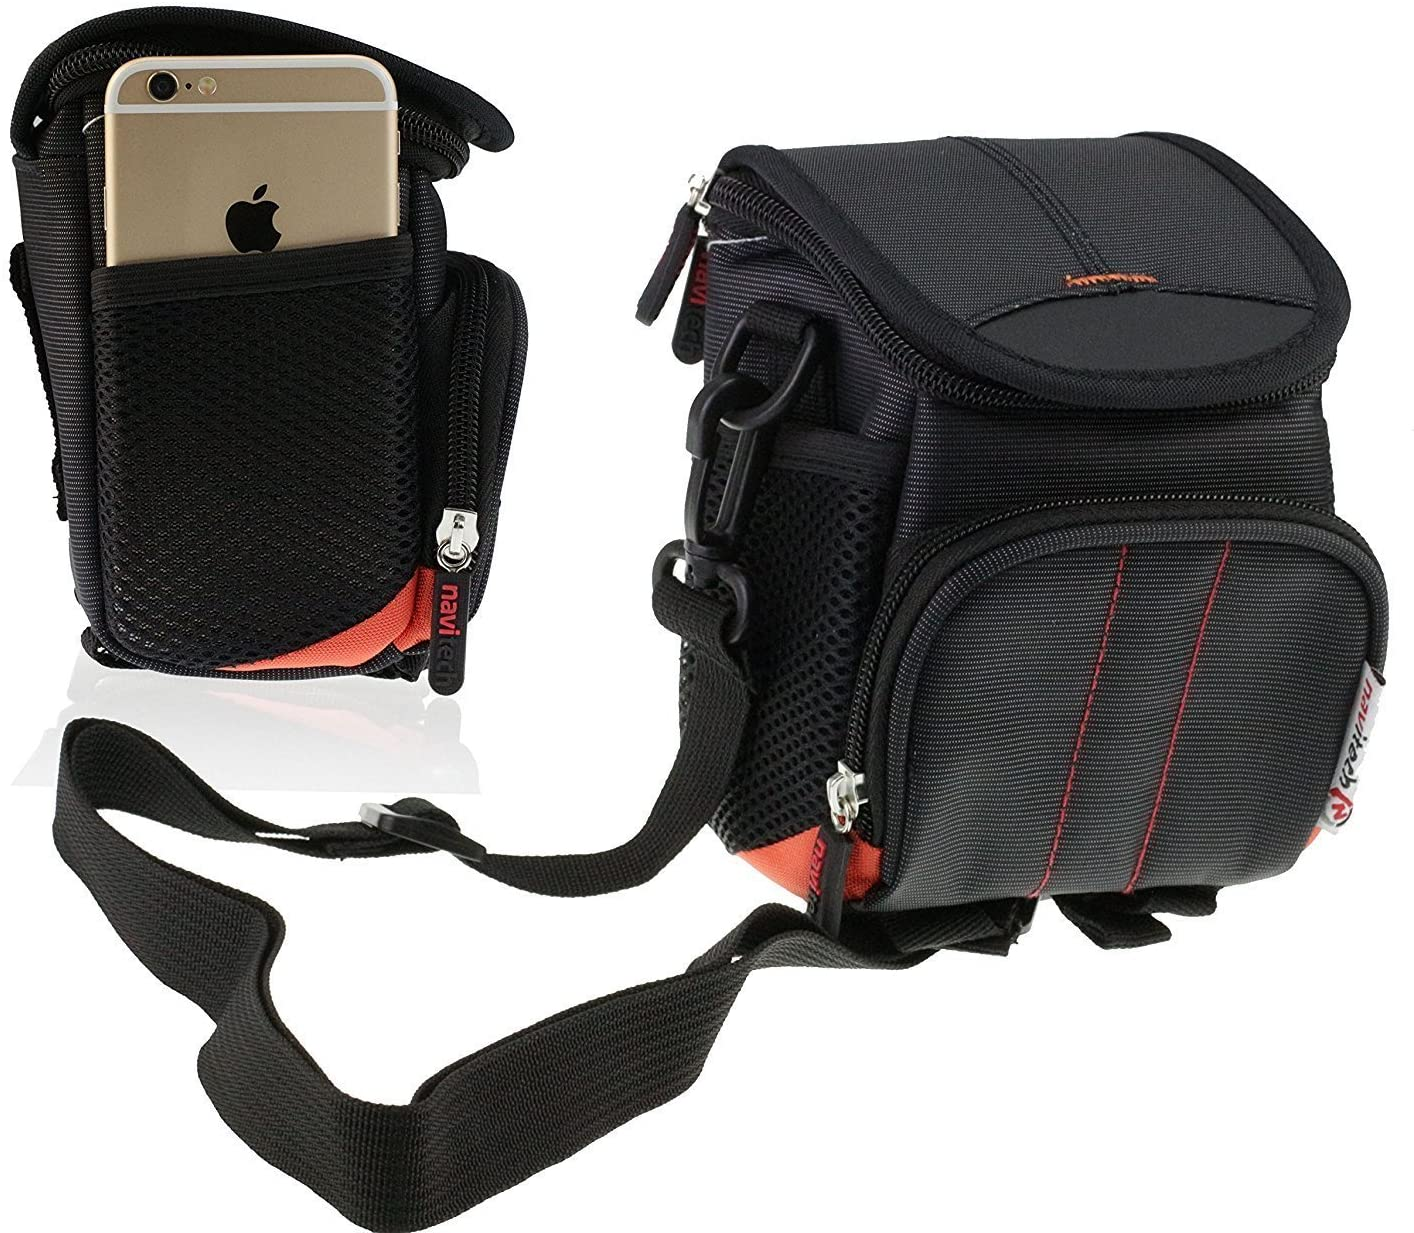 Navitech Black Digital Camera Case Bag Cover Compatible with The Canon Digital Camera Ixus 177 20.5 Mpix